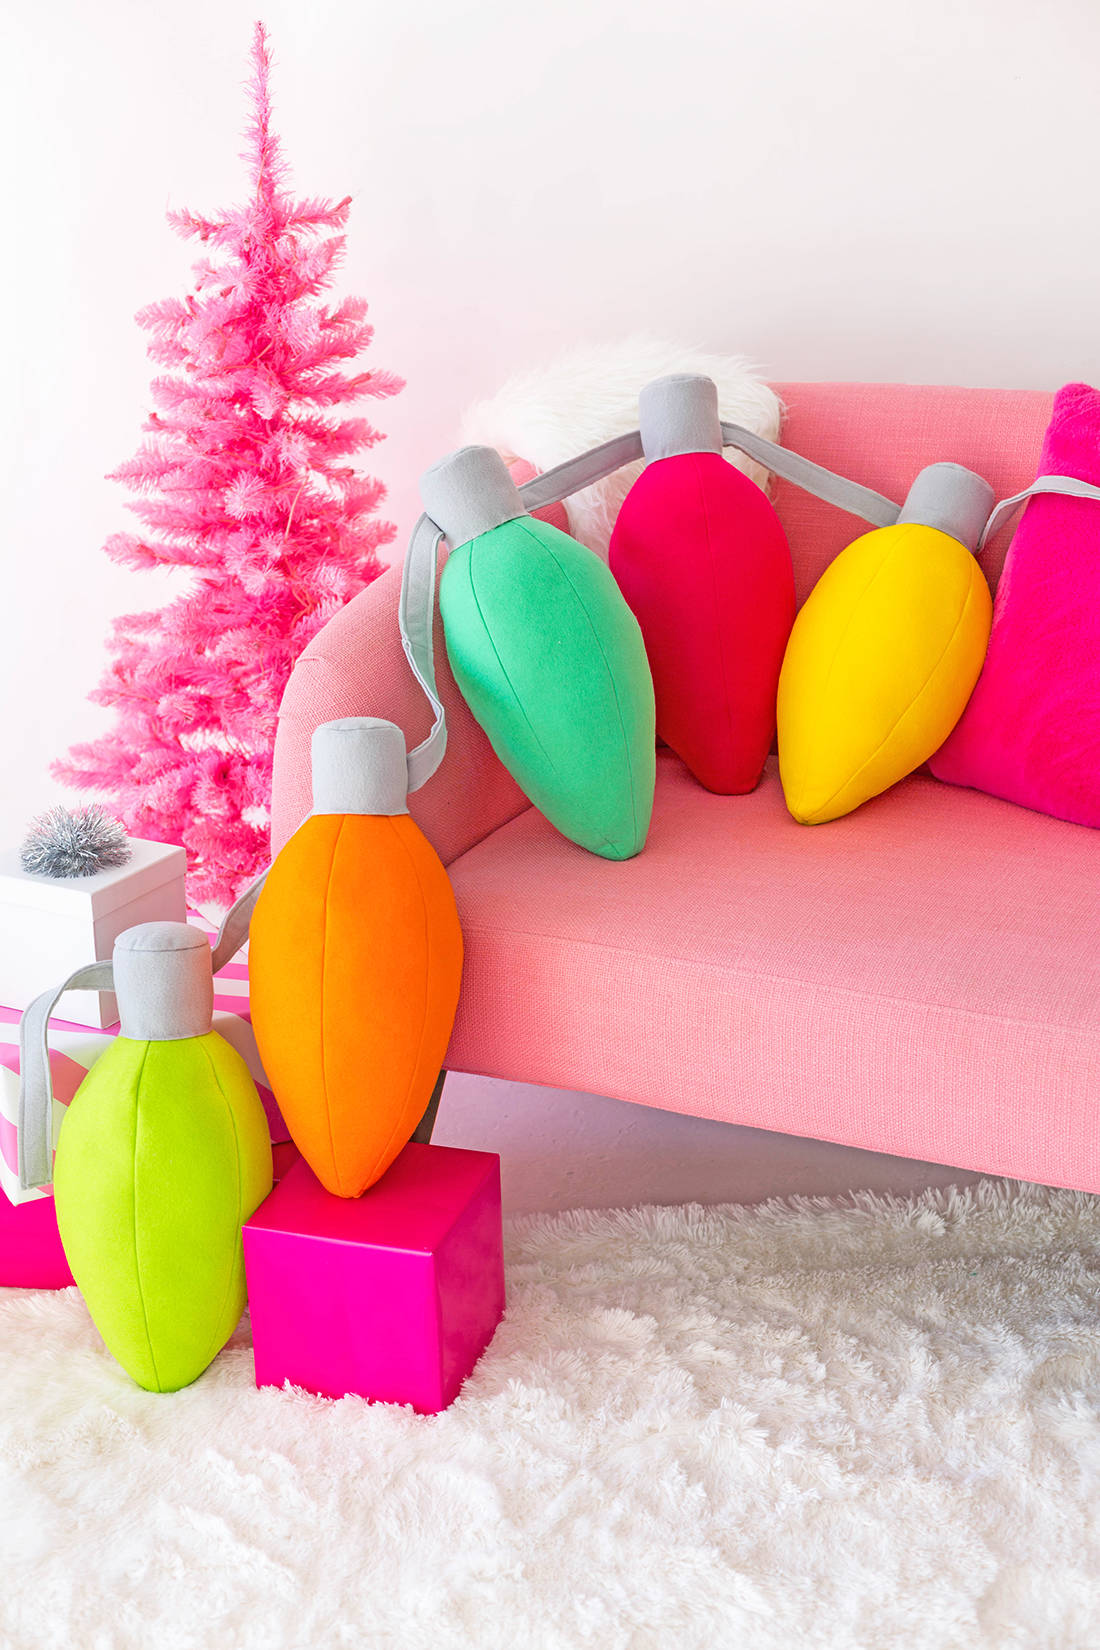 D.I.Y Holiday Light Pillows by Aww Sam Blog - For the Love of…Christmas at www.elistonbutton.com - Eliston Button - That Crafty Kid – Art, Design, Craft & Adventure.